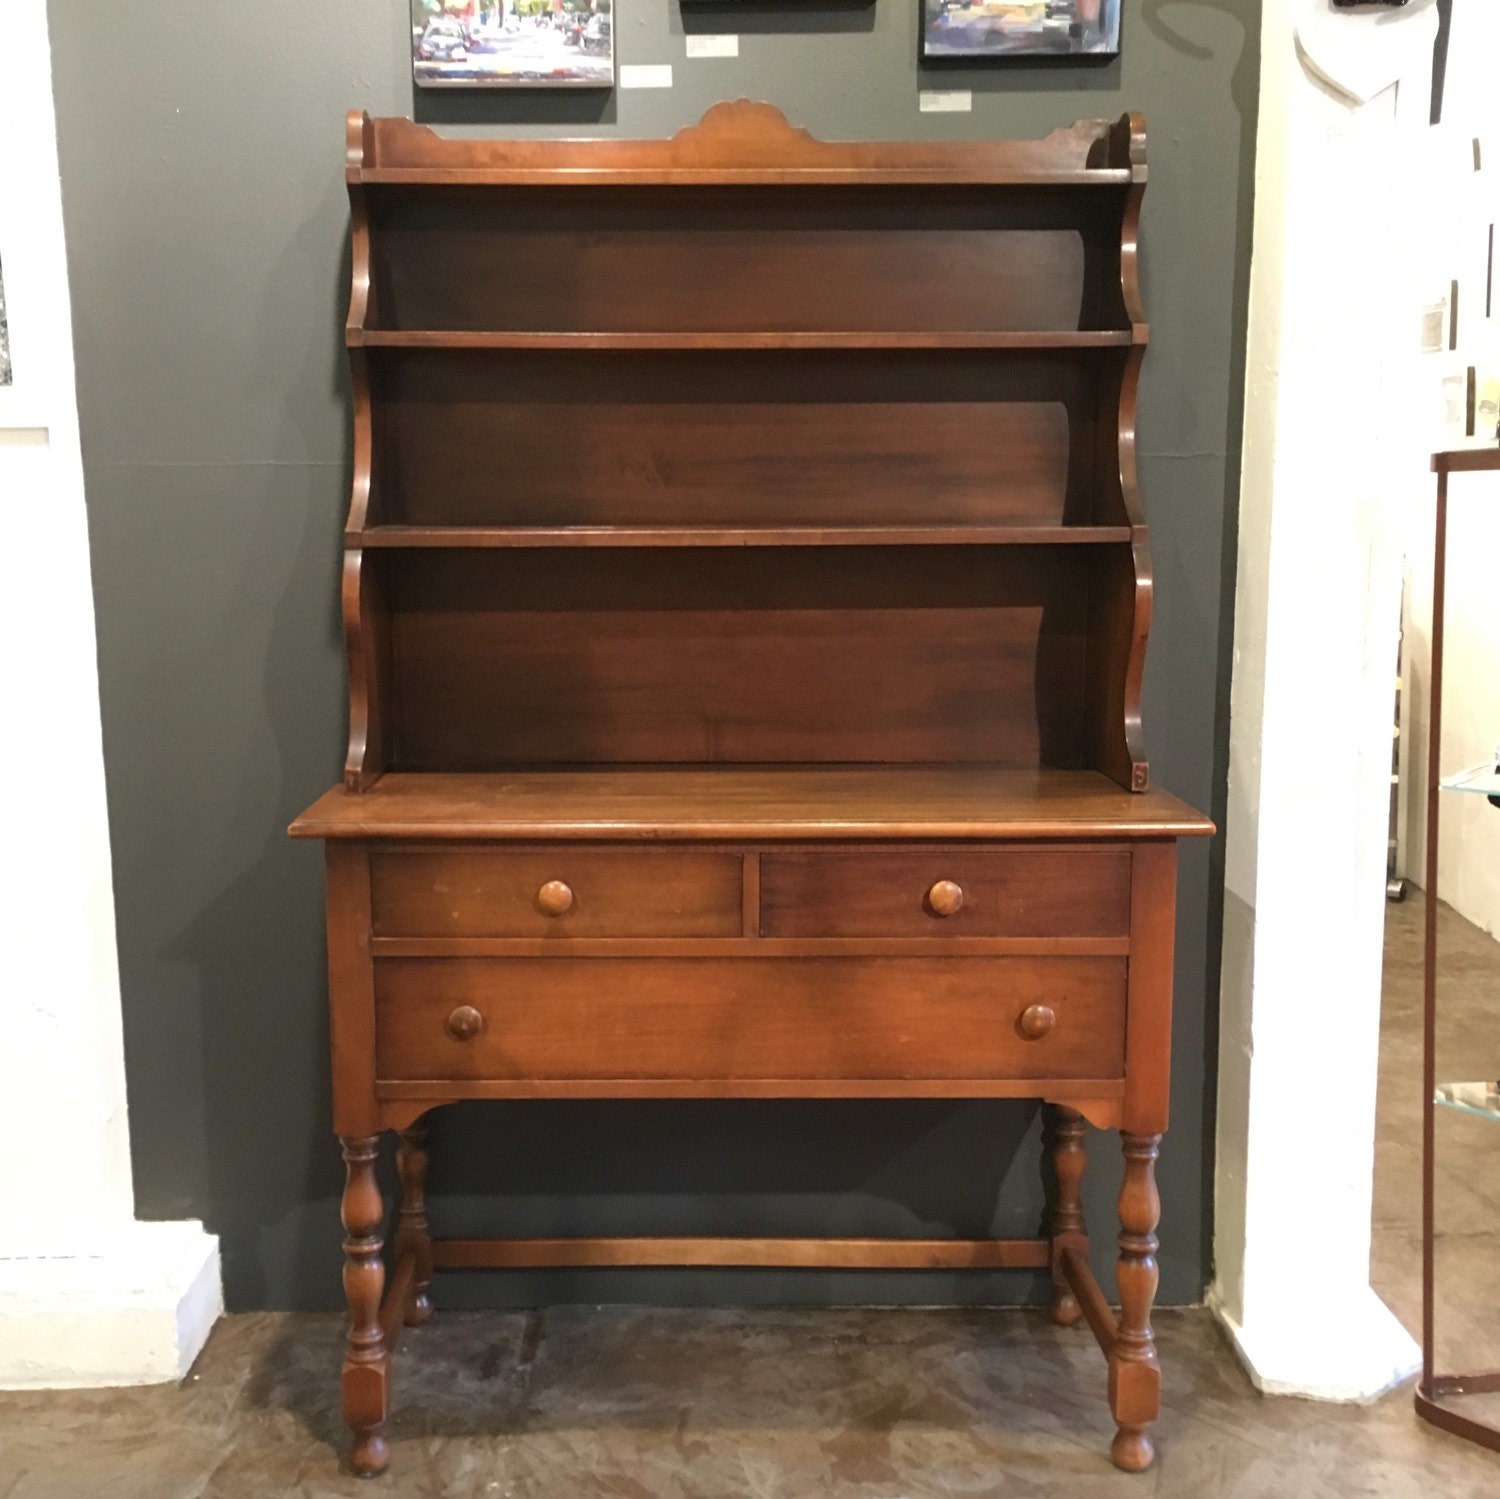 Antique Kitchen Hutch And Buffet: Antique Buffet With Hutch By Tomlinson. Sideboard With Display